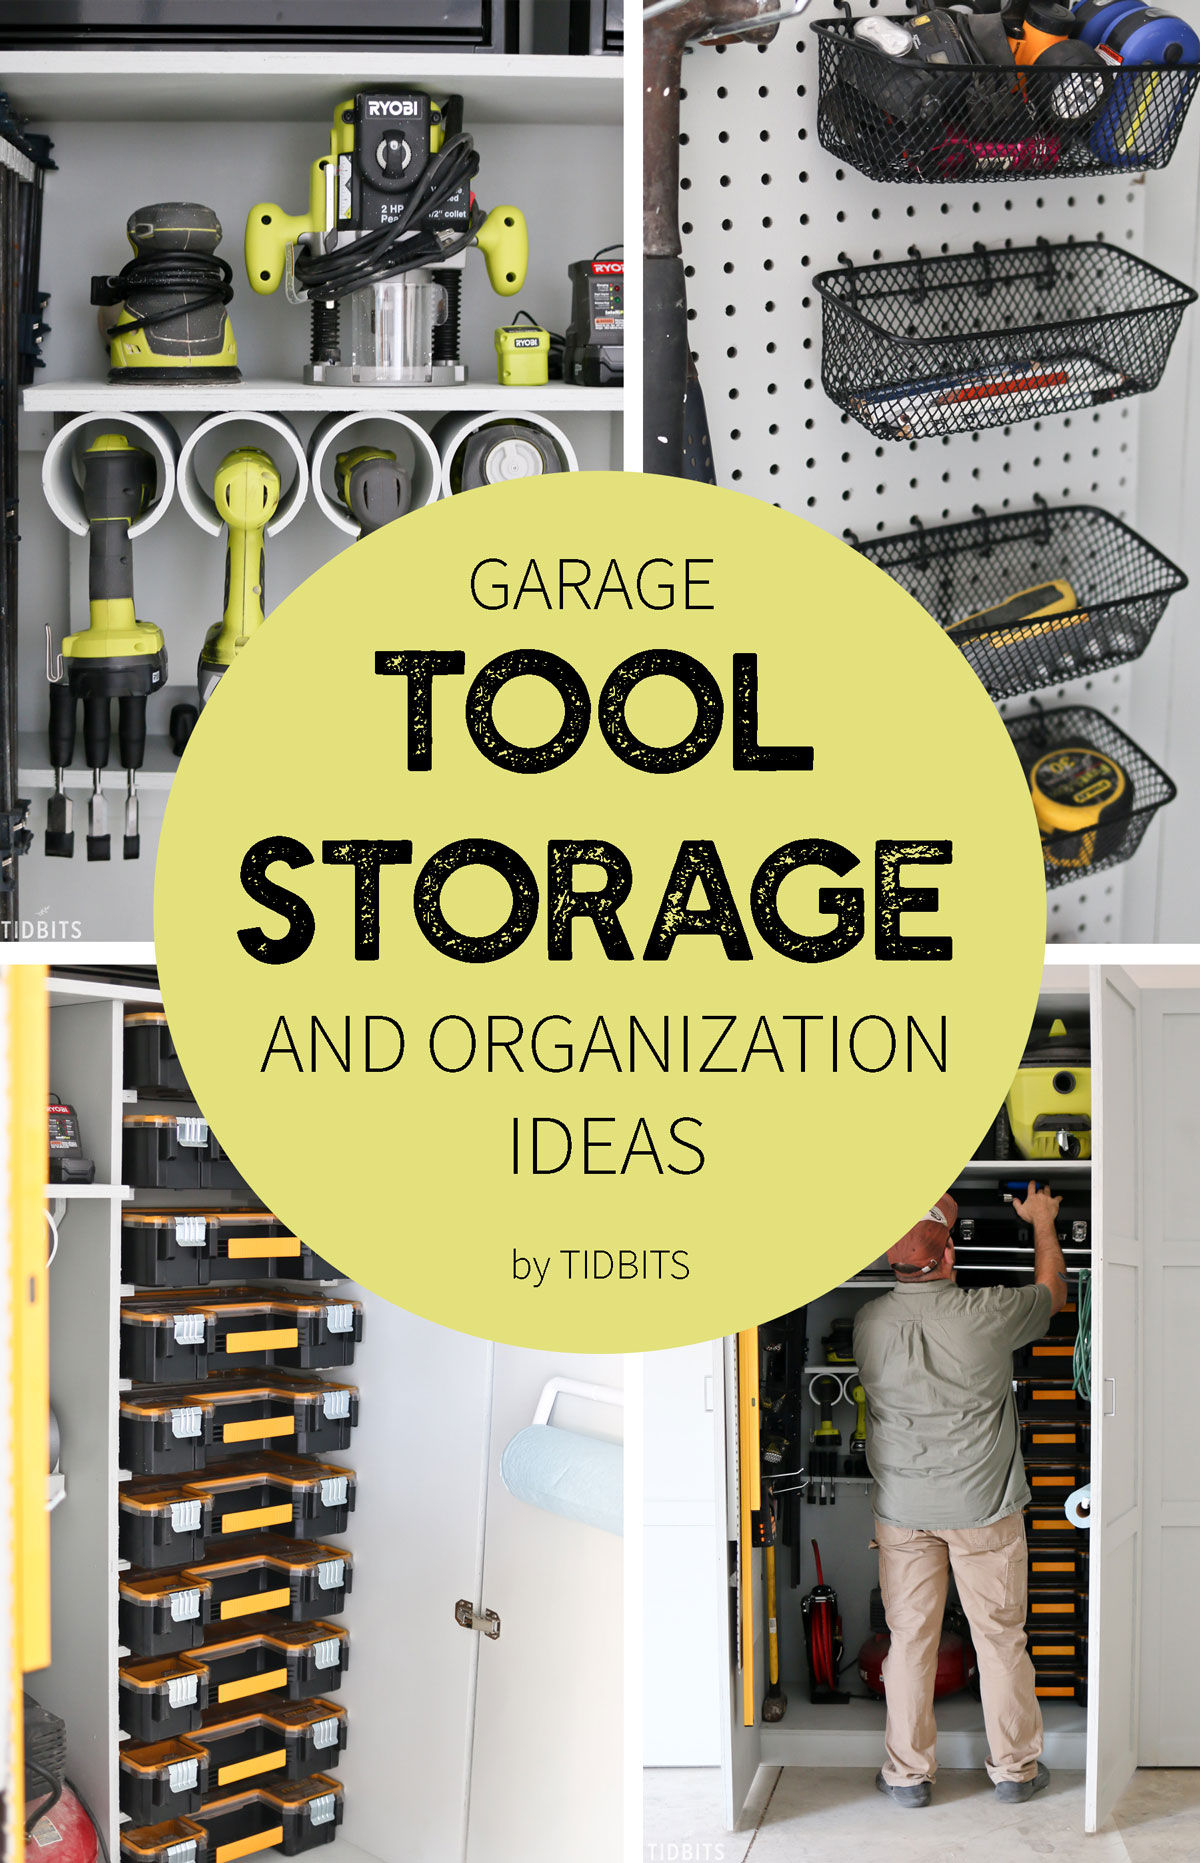 Garage Tool Storage And Organization Ideas